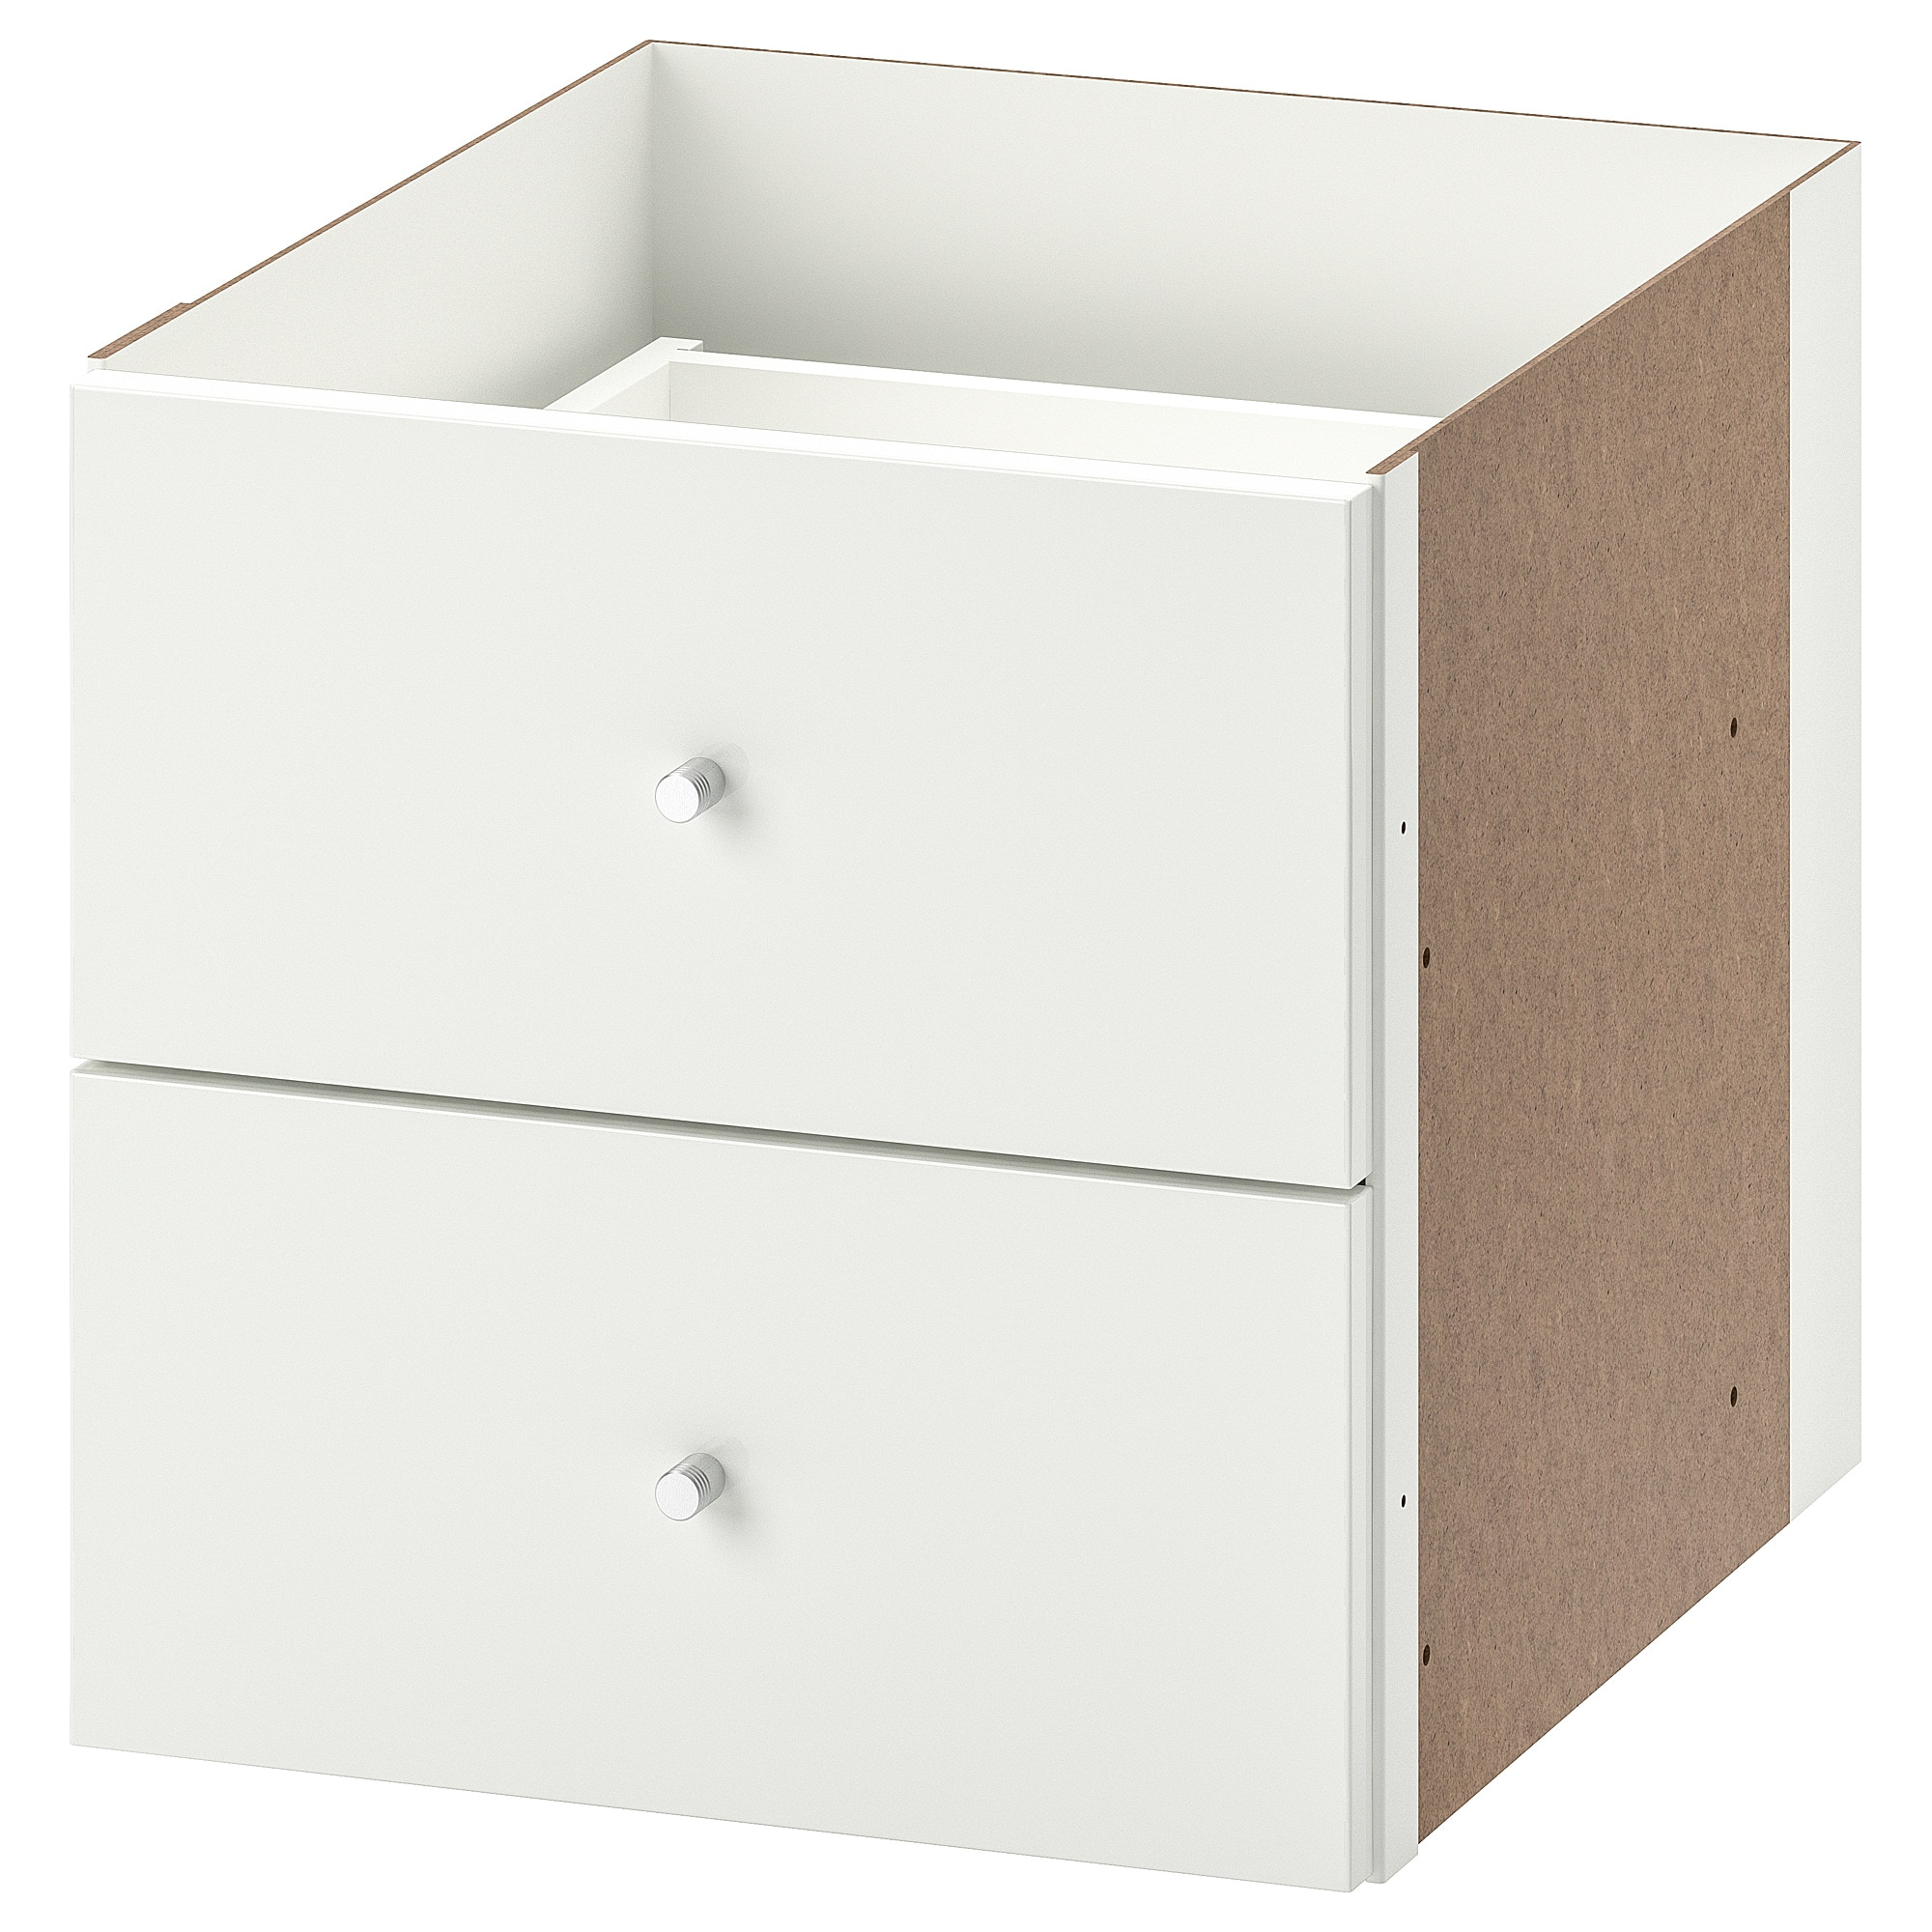 Filing Cabinet Insert Kallax Insert With 2 Drawers White